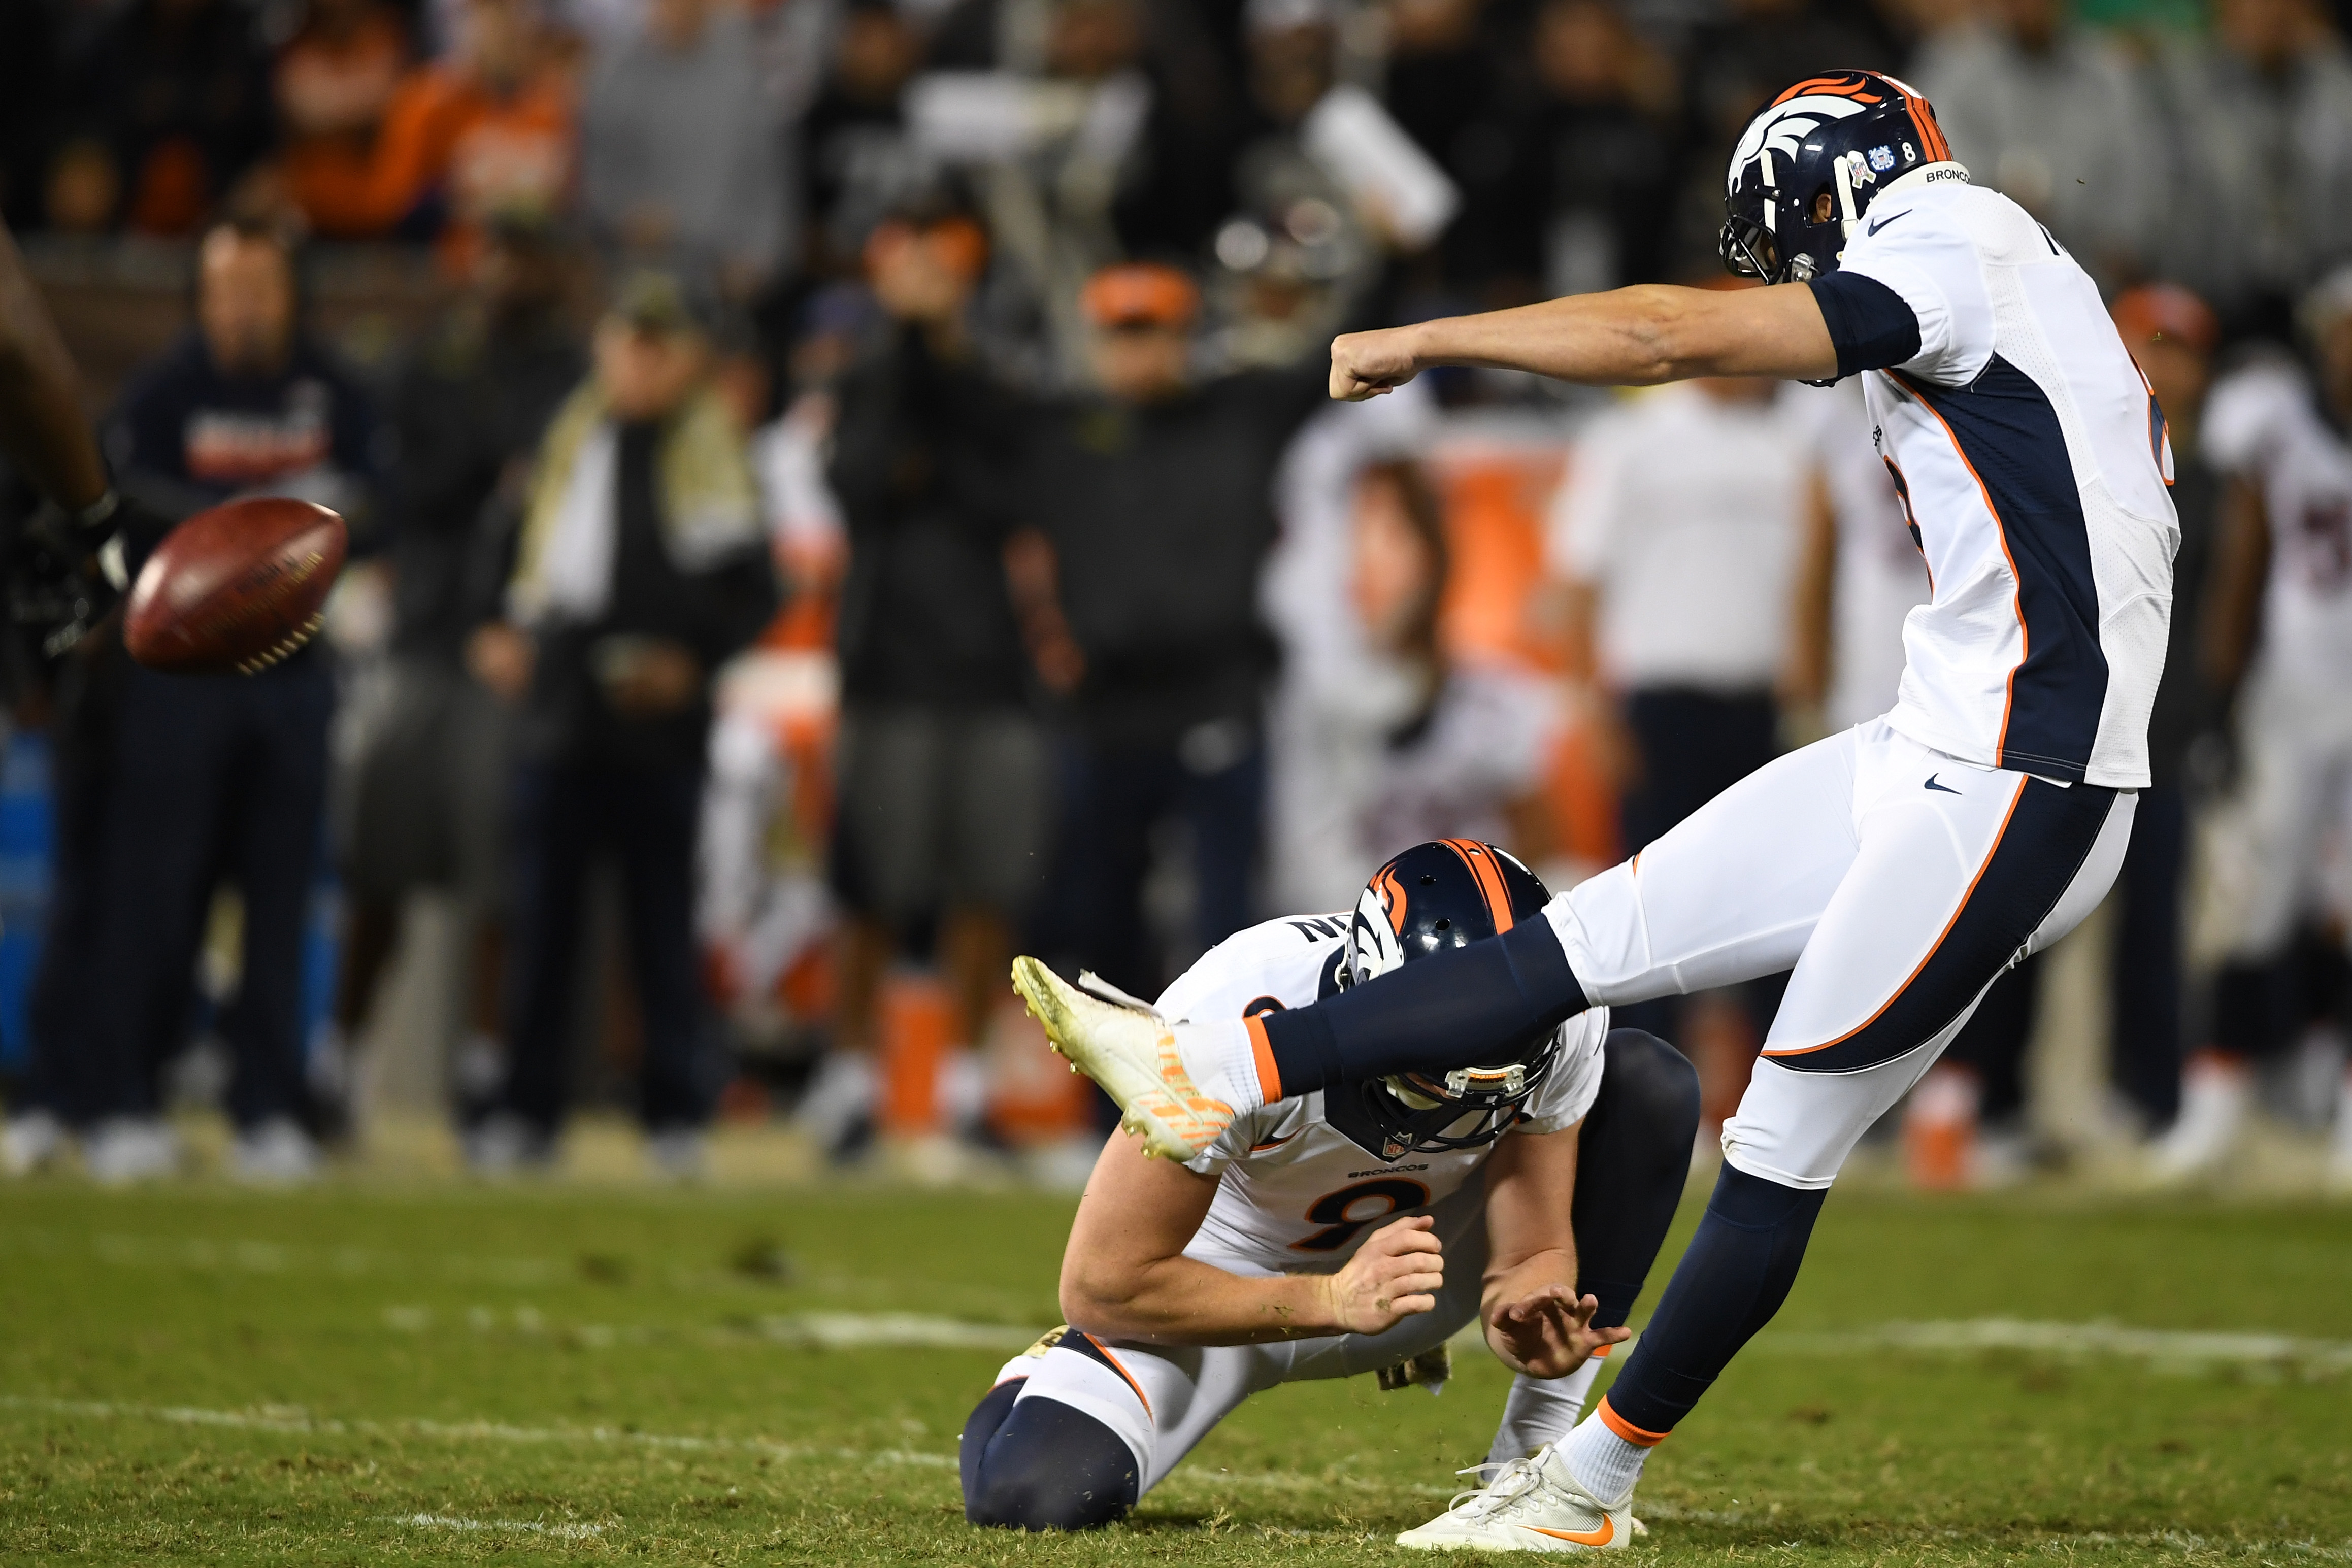 OAKLAND, CA - NOVEMBER 06:   Brandon McManus #8 of the Denver Broncos kicks a field goal against the Oakland Raiders at Oakland-Alameda County Coliseum on November 6, 2016 in Oakland, California. (Photo by Thearon W. Henderson/Getty Images)